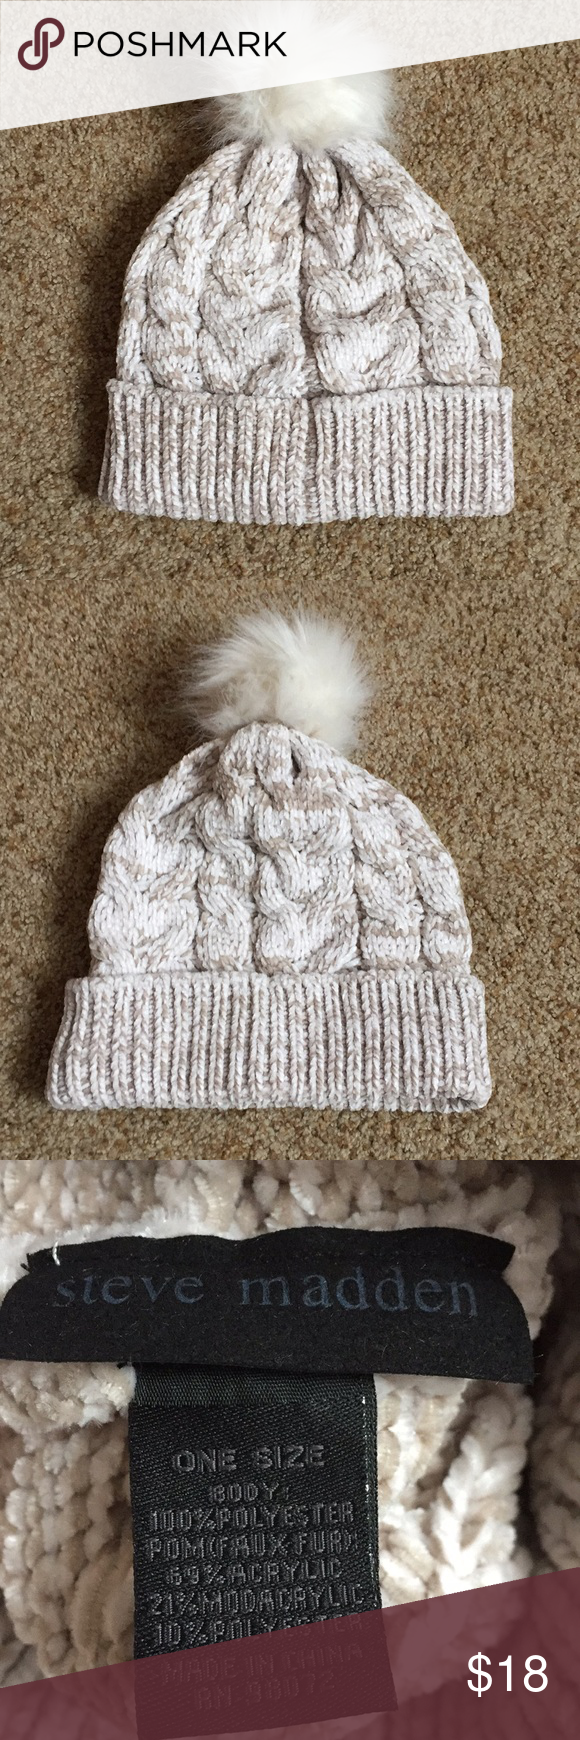 a600237b3e4277 Adorable New Steve Madden Winter Hat Adorable cream/light brown super soft winter  hat! Snow bunny cuteness. Never been worn, I still have the tags but have  ...